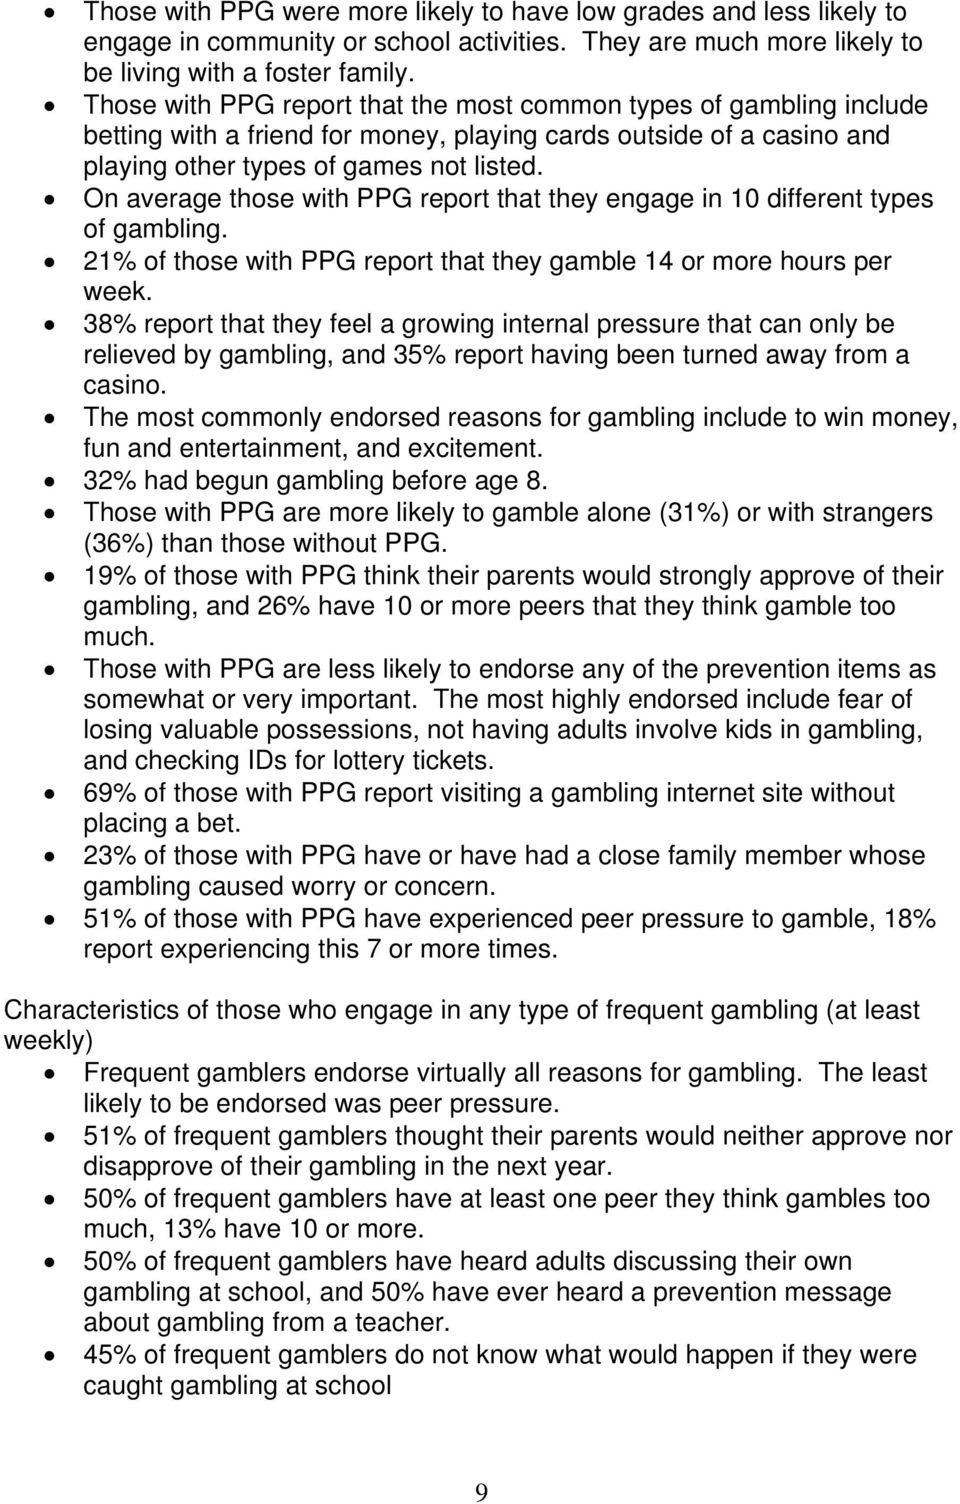 On average those with PPG report that they engage in 10 different types of gambling. 21% of those with PPG report that they gamble 14 or more hours per week.